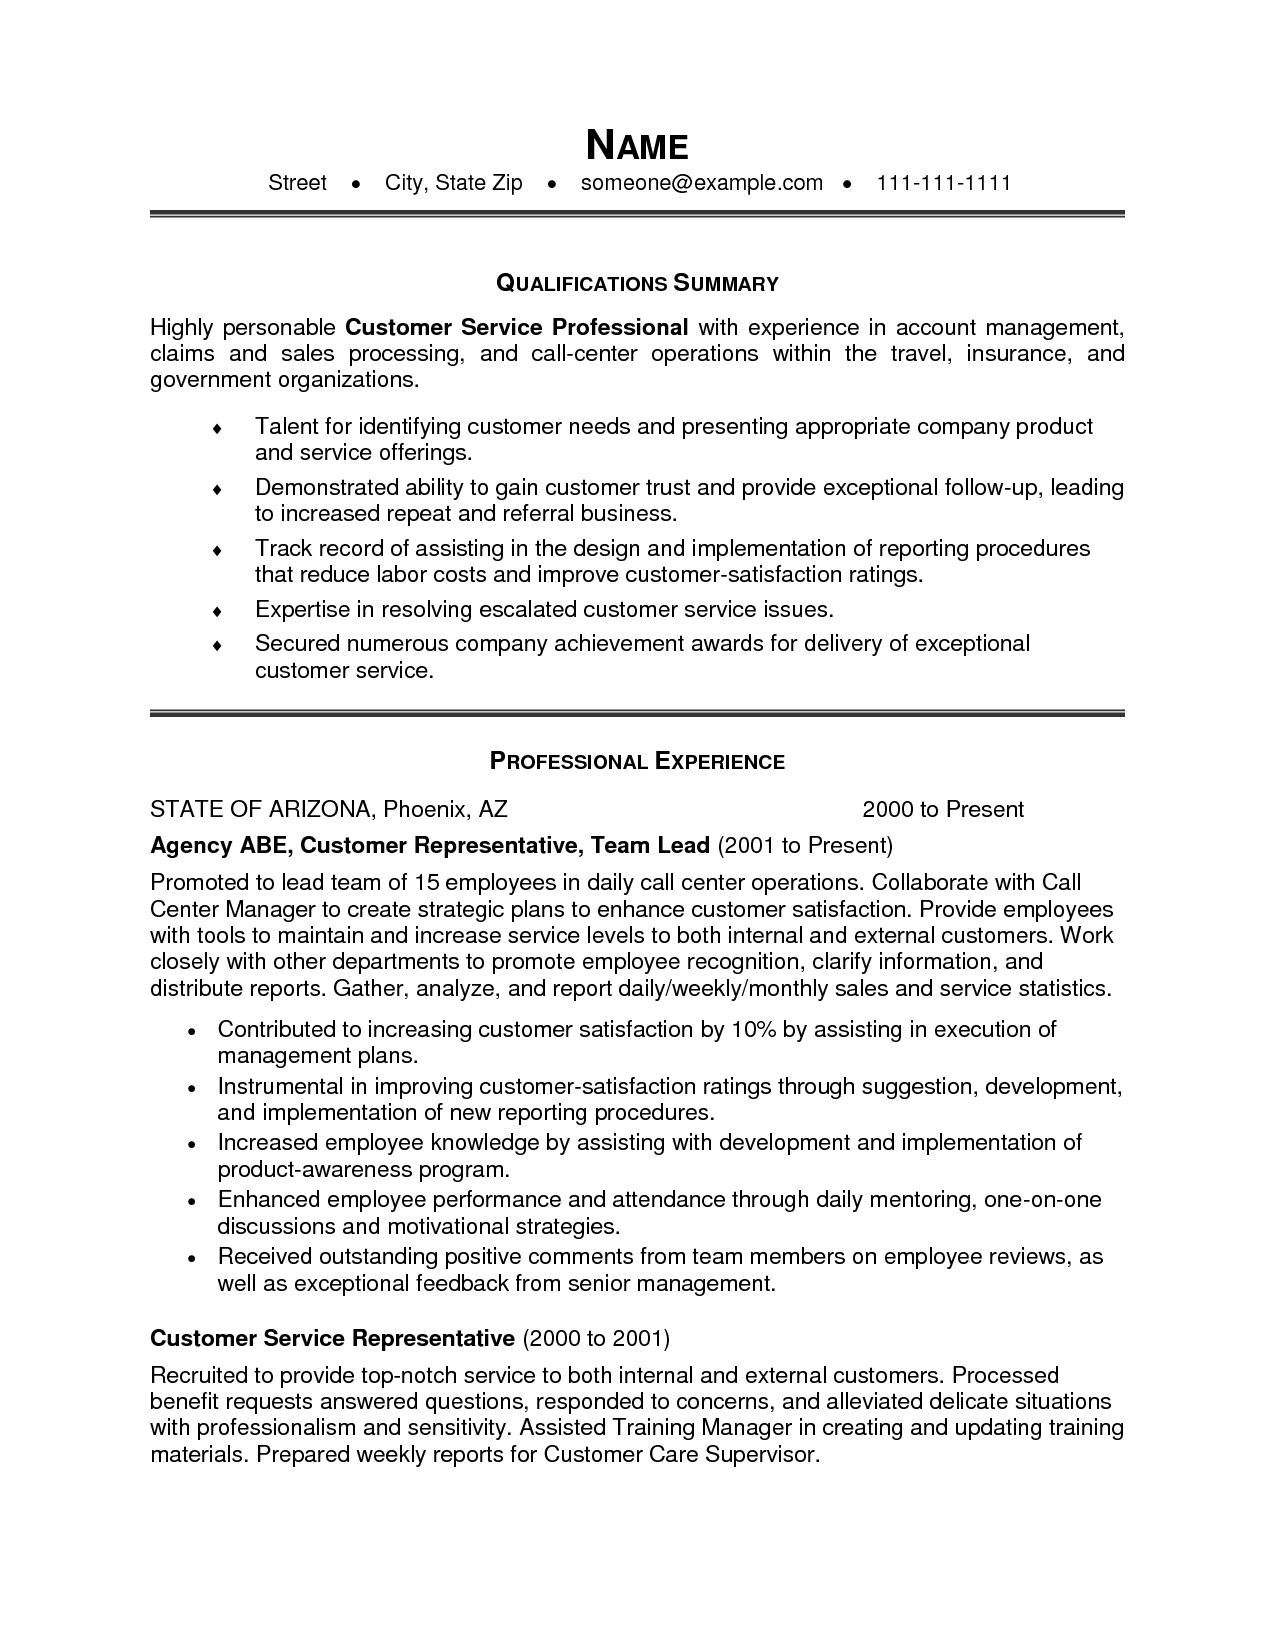 Customer Service Resume Summary Examples Resume Summary Examples Customer  Service 18ba541c5  Summary Example For Resume